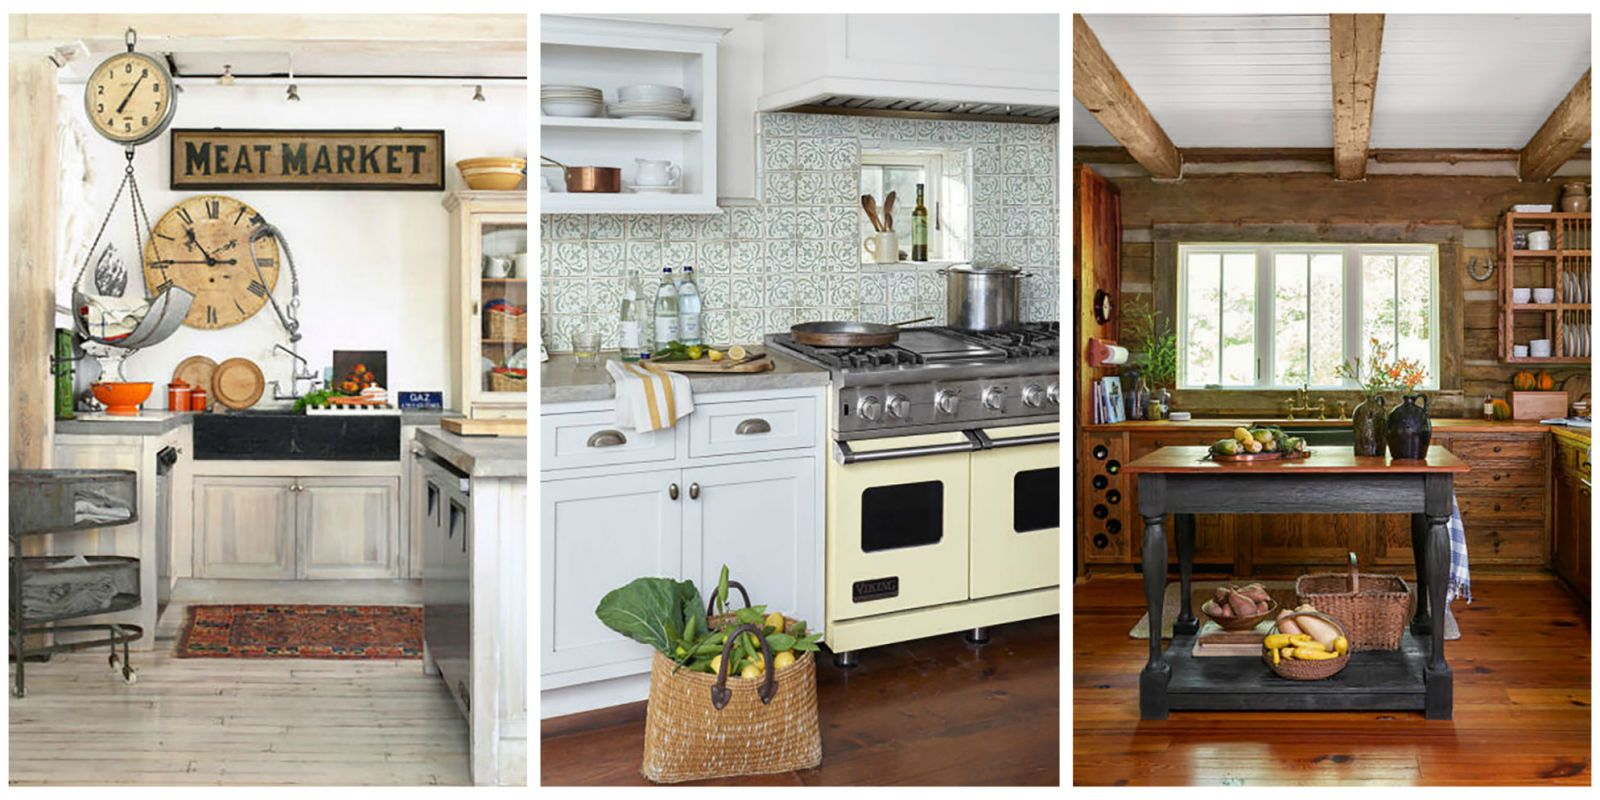 Find More Ways To Add Farmhouse Styleto Every Room Of The House; Plus,  Check Out Our Full Collection Of Style Inspiration For Country Homes.